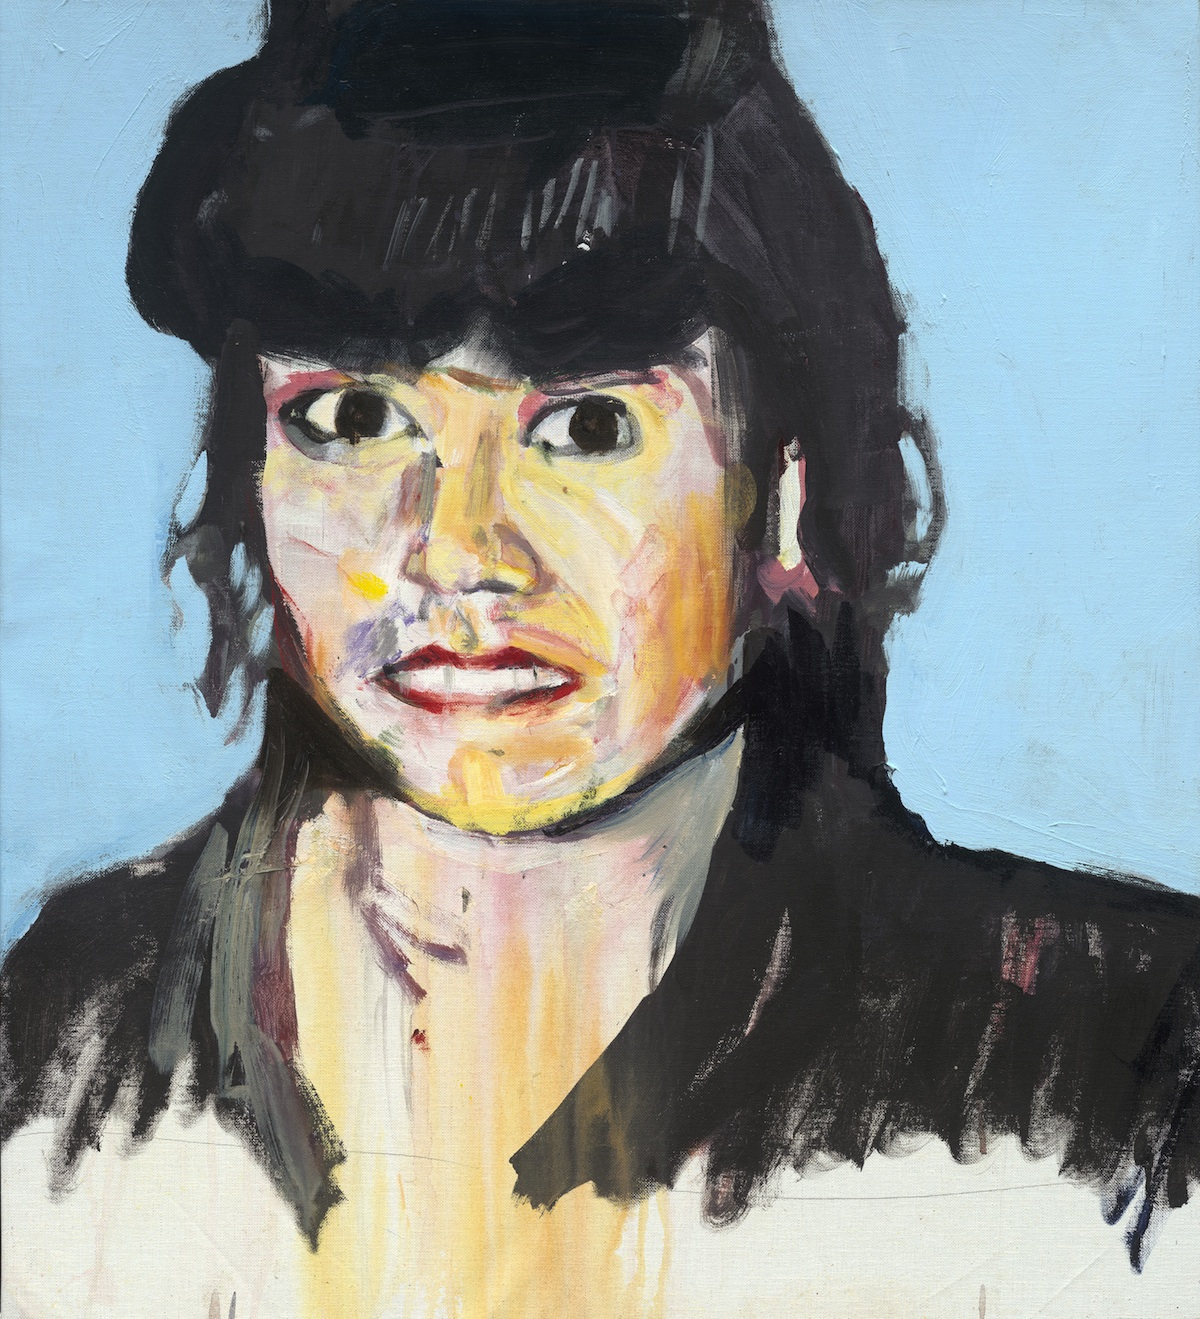 Brian Maguire, Erika Perez Escobedo, acrylic on canvas, 2012, 81.5 x 73cm, Private Collection.